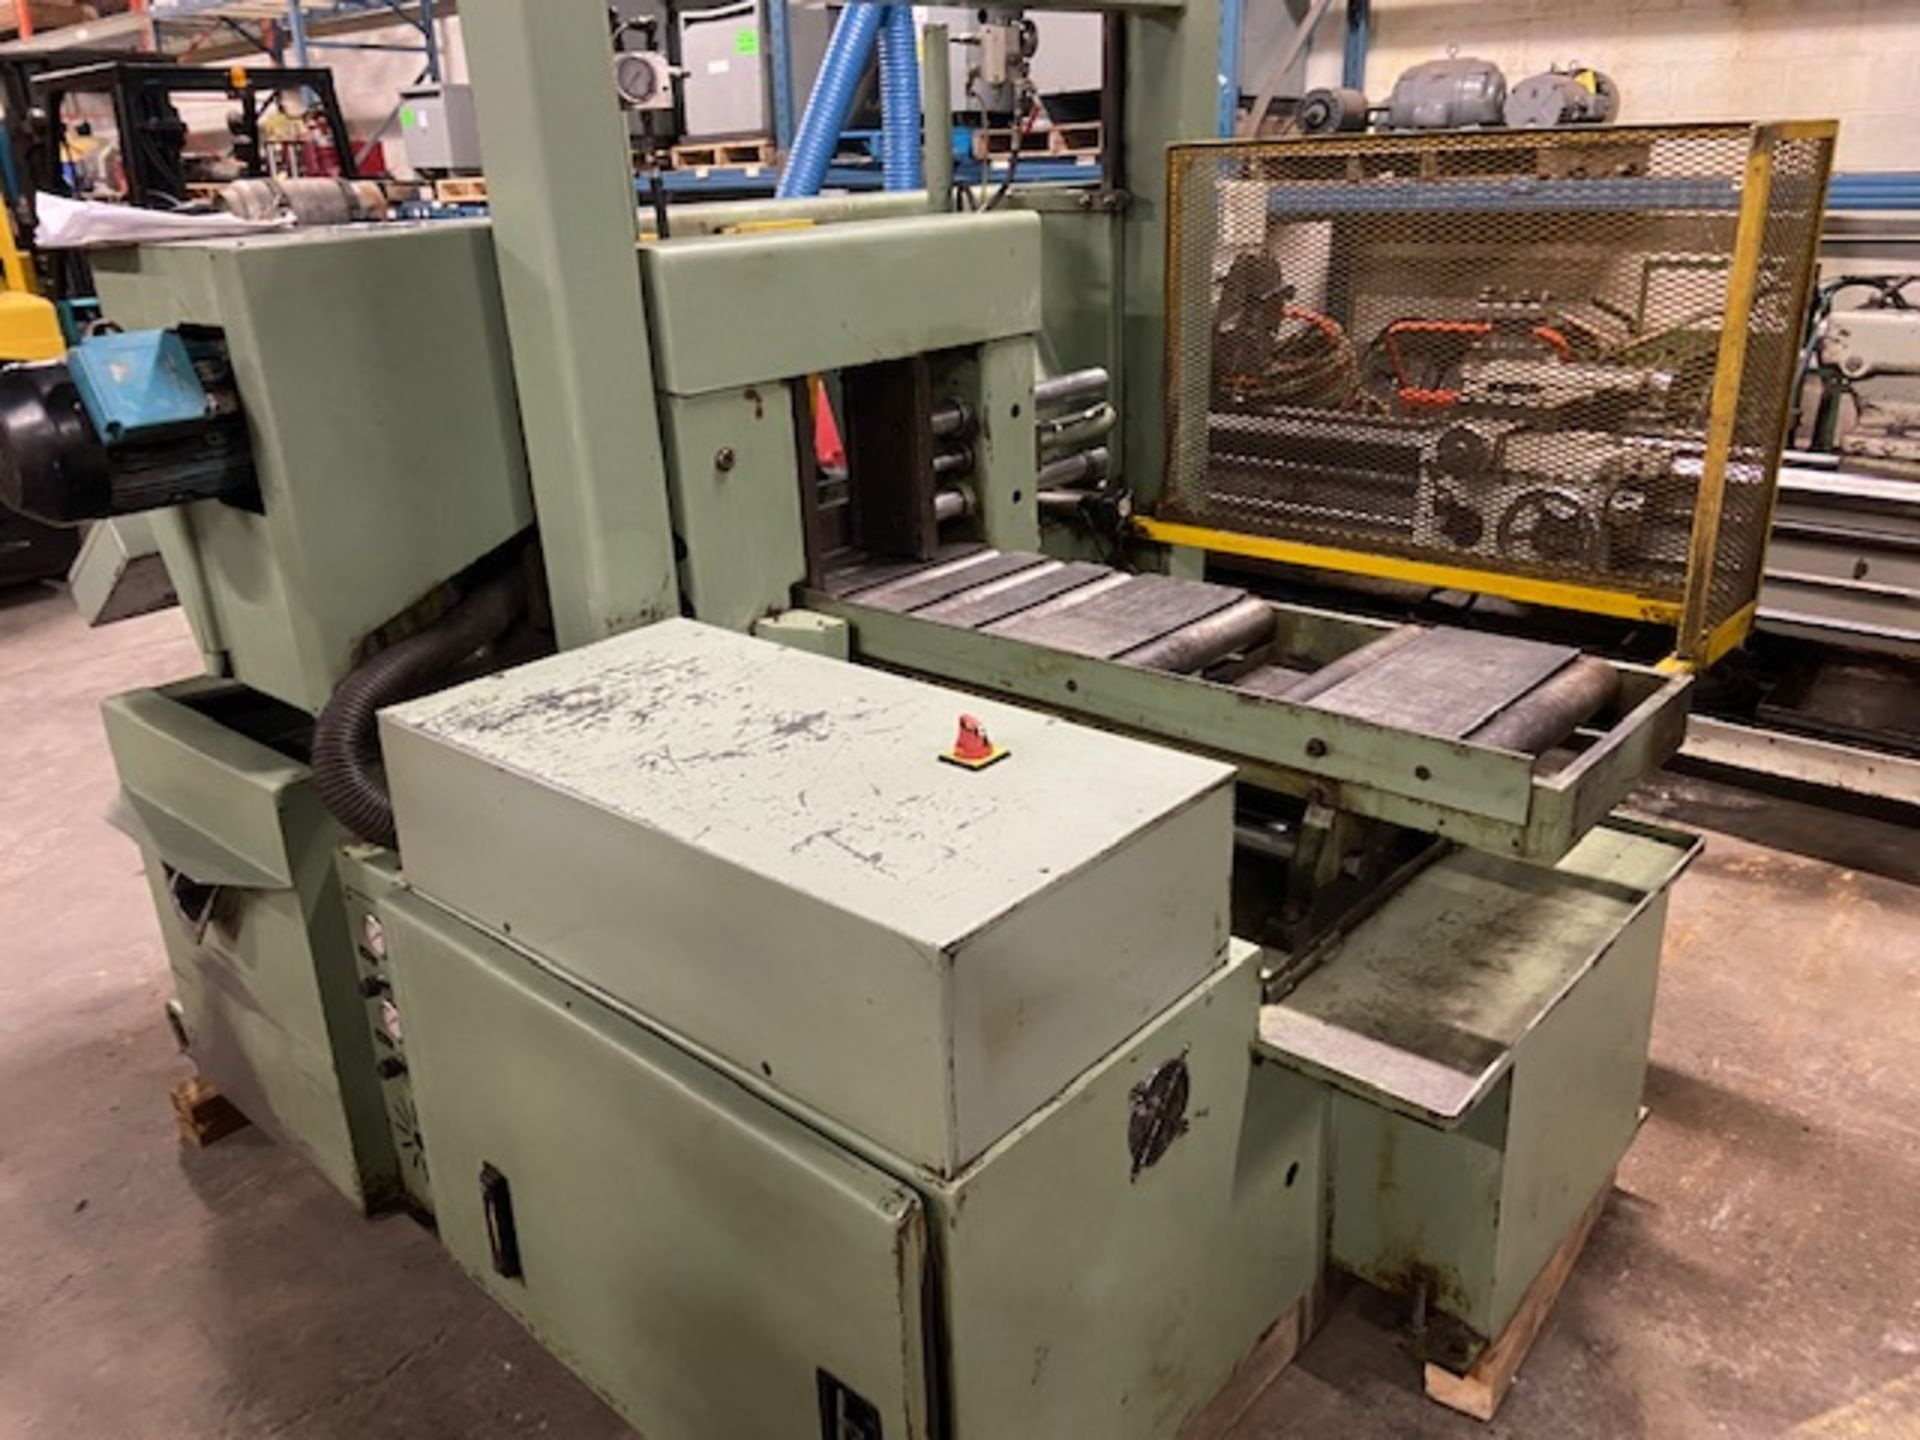 Hyd-Mech H-14 Fully Automatic horizontal band saw automatic feed and auto bundling system NICE - Image 3 of 4